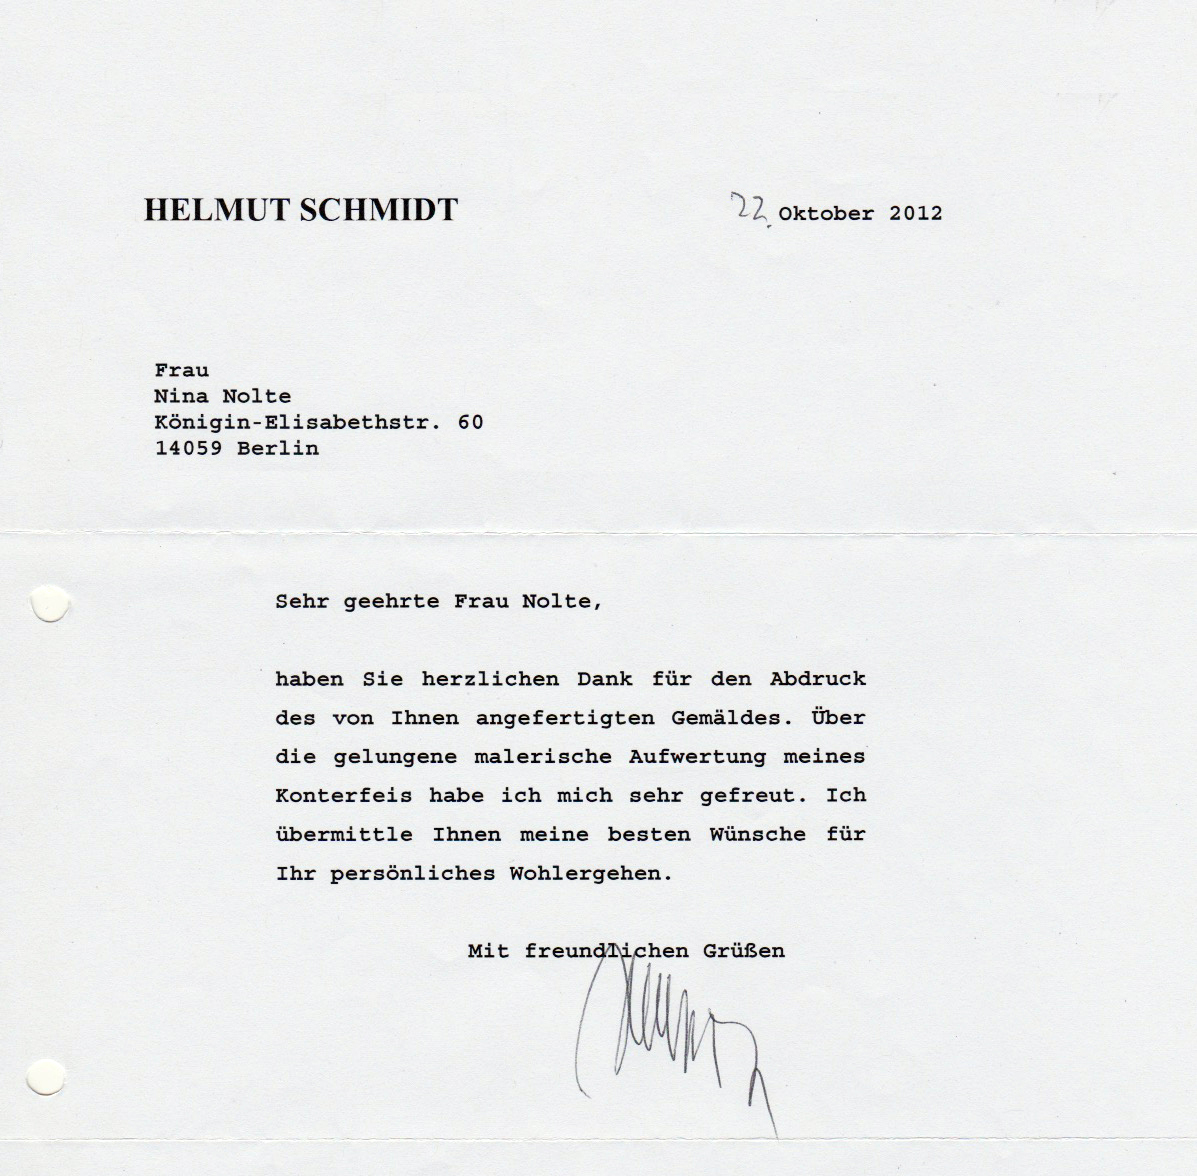 Helmut Schmidt - A letter from 2012 written by Helmut Schmidt thanking me for a copy of his portrait I´d sent to him.